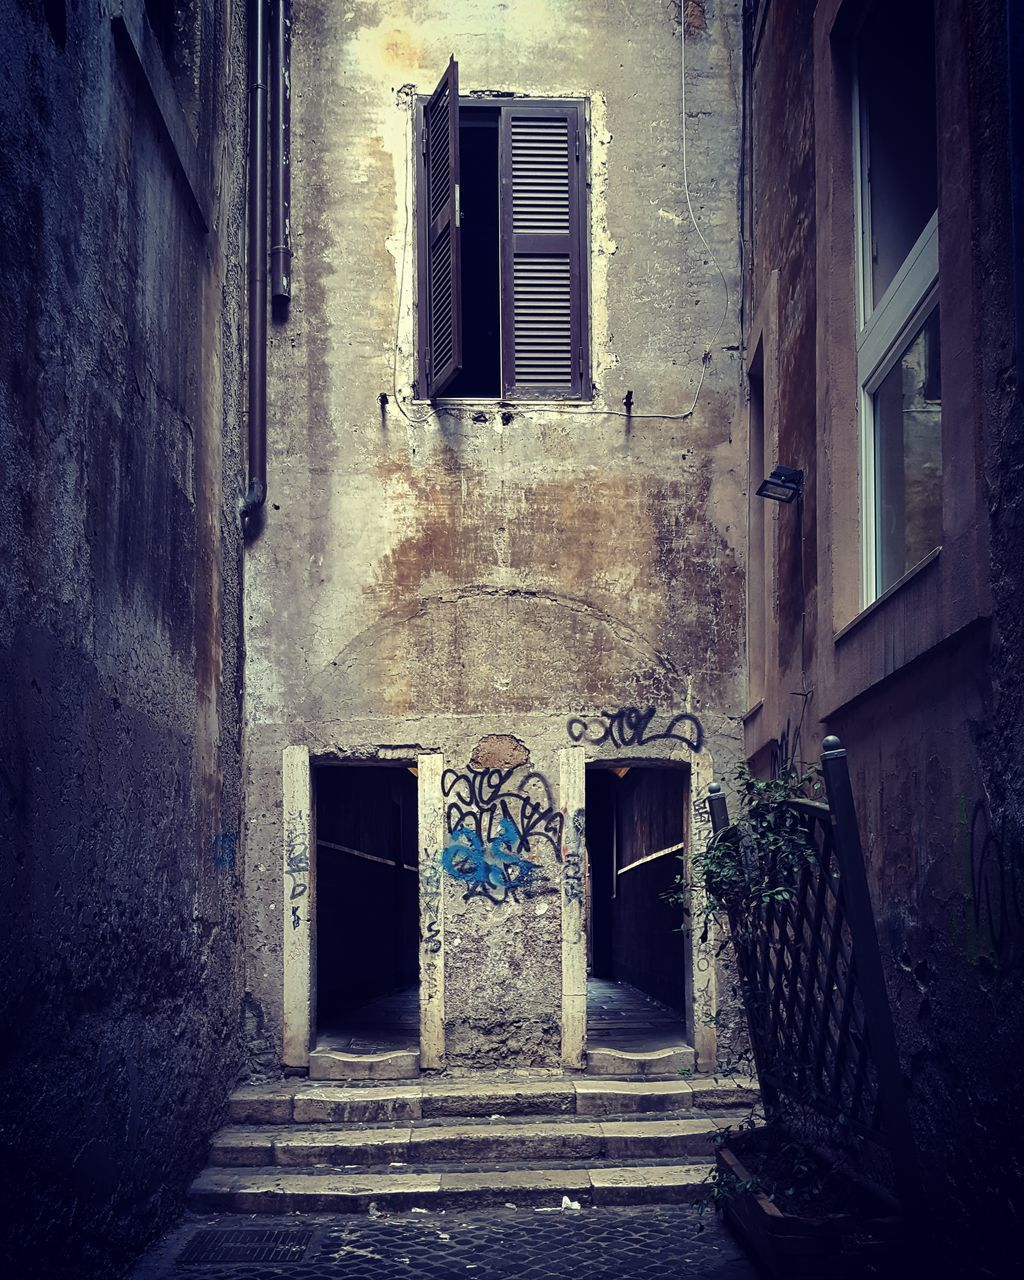 architecture, built structure, building, window, building exterior, entrance, door, no people, wall, old, day, history, outdoors, abandoned, direction, city, residential district, house, wall - building feature, the past, ruined